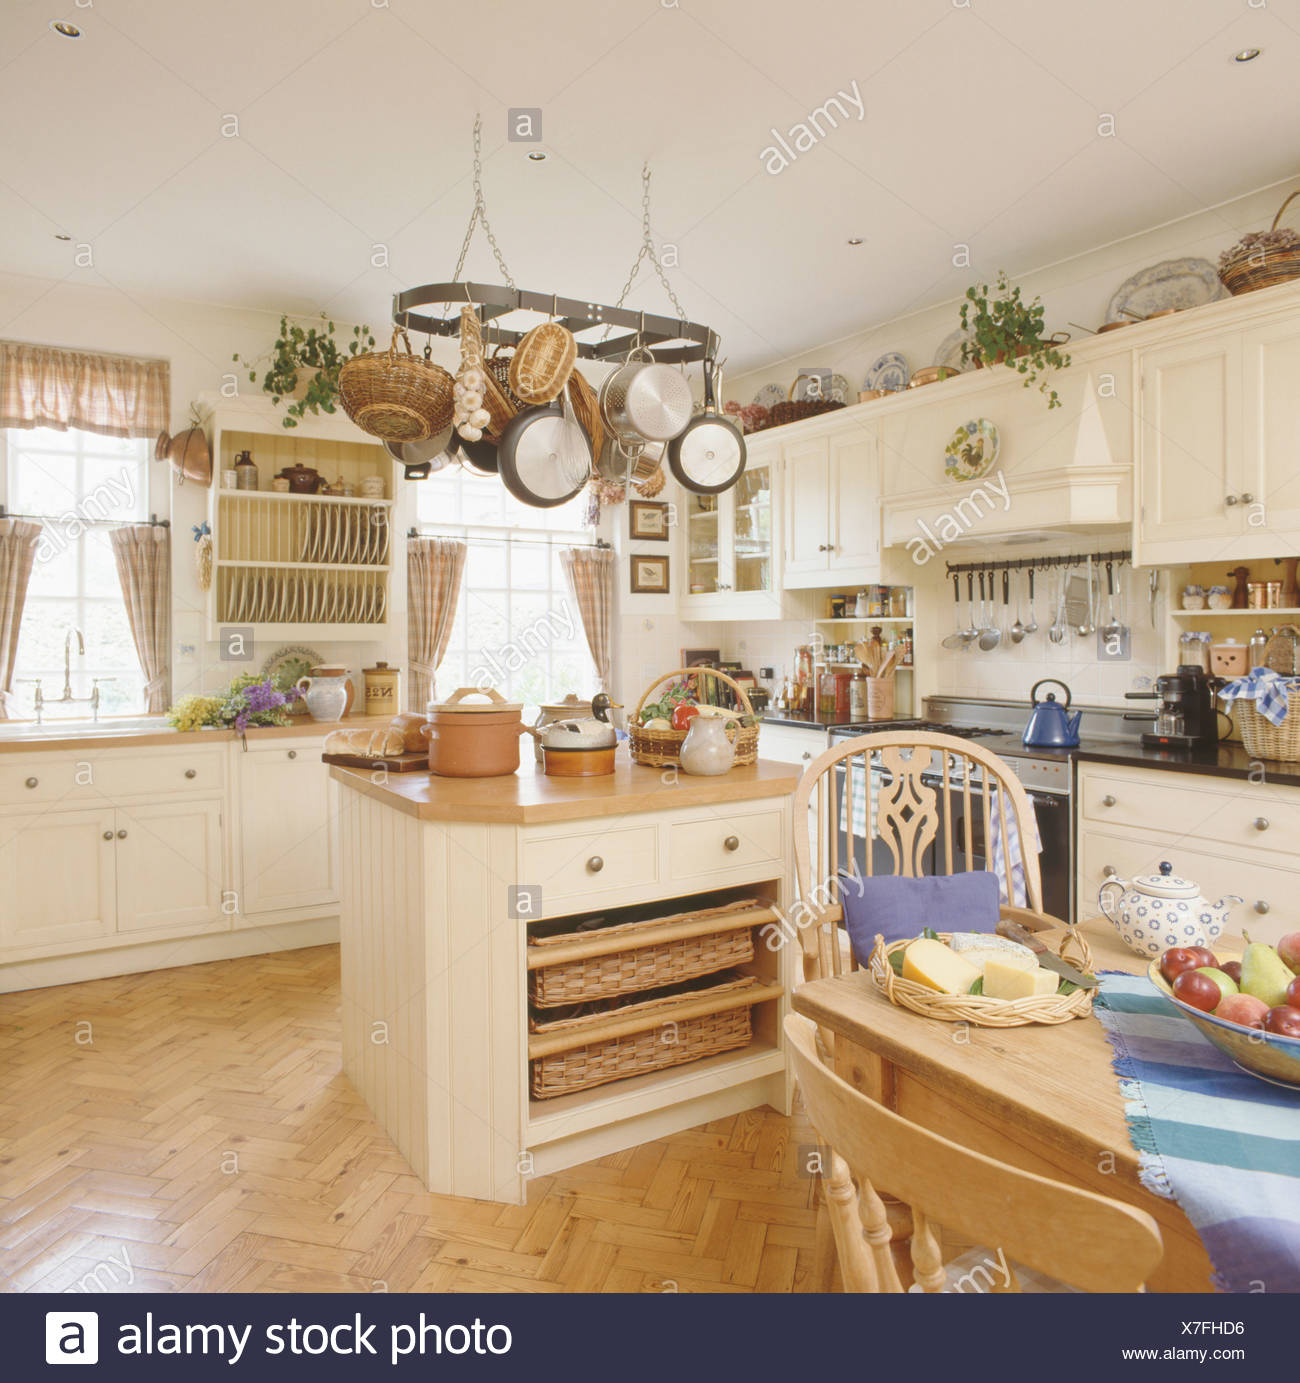 Pans On Rack Above Island Unit With Storage Baskets On Shelves In Cream Kitchen With Parquet Flooring Stock Photo Alamy